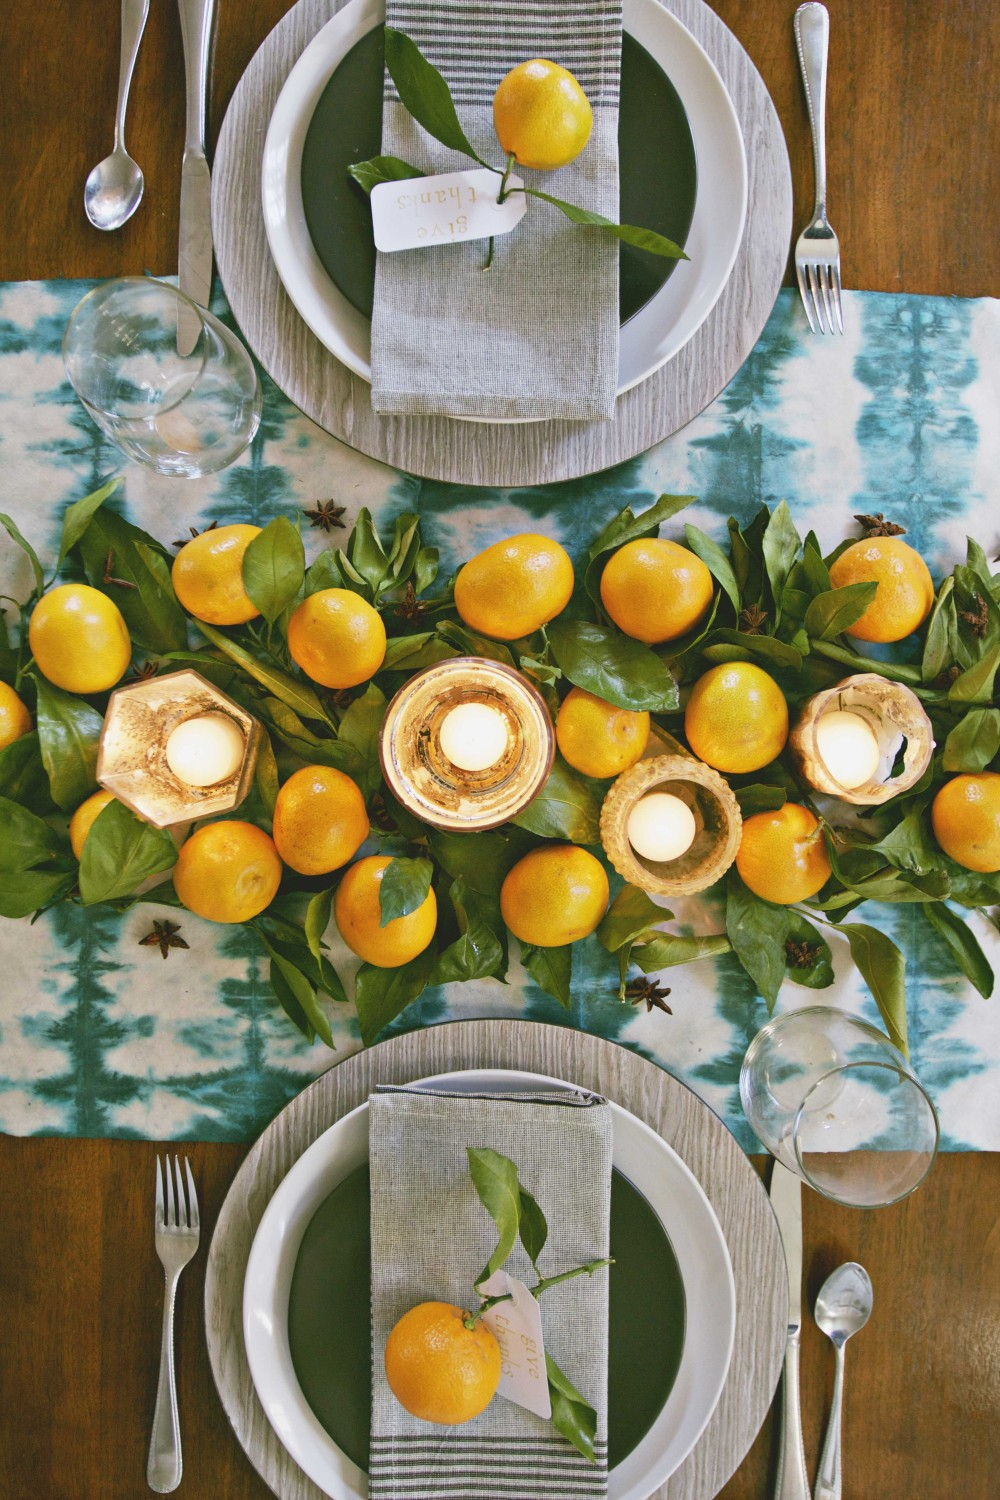 DIY shibori table runner from Annabode